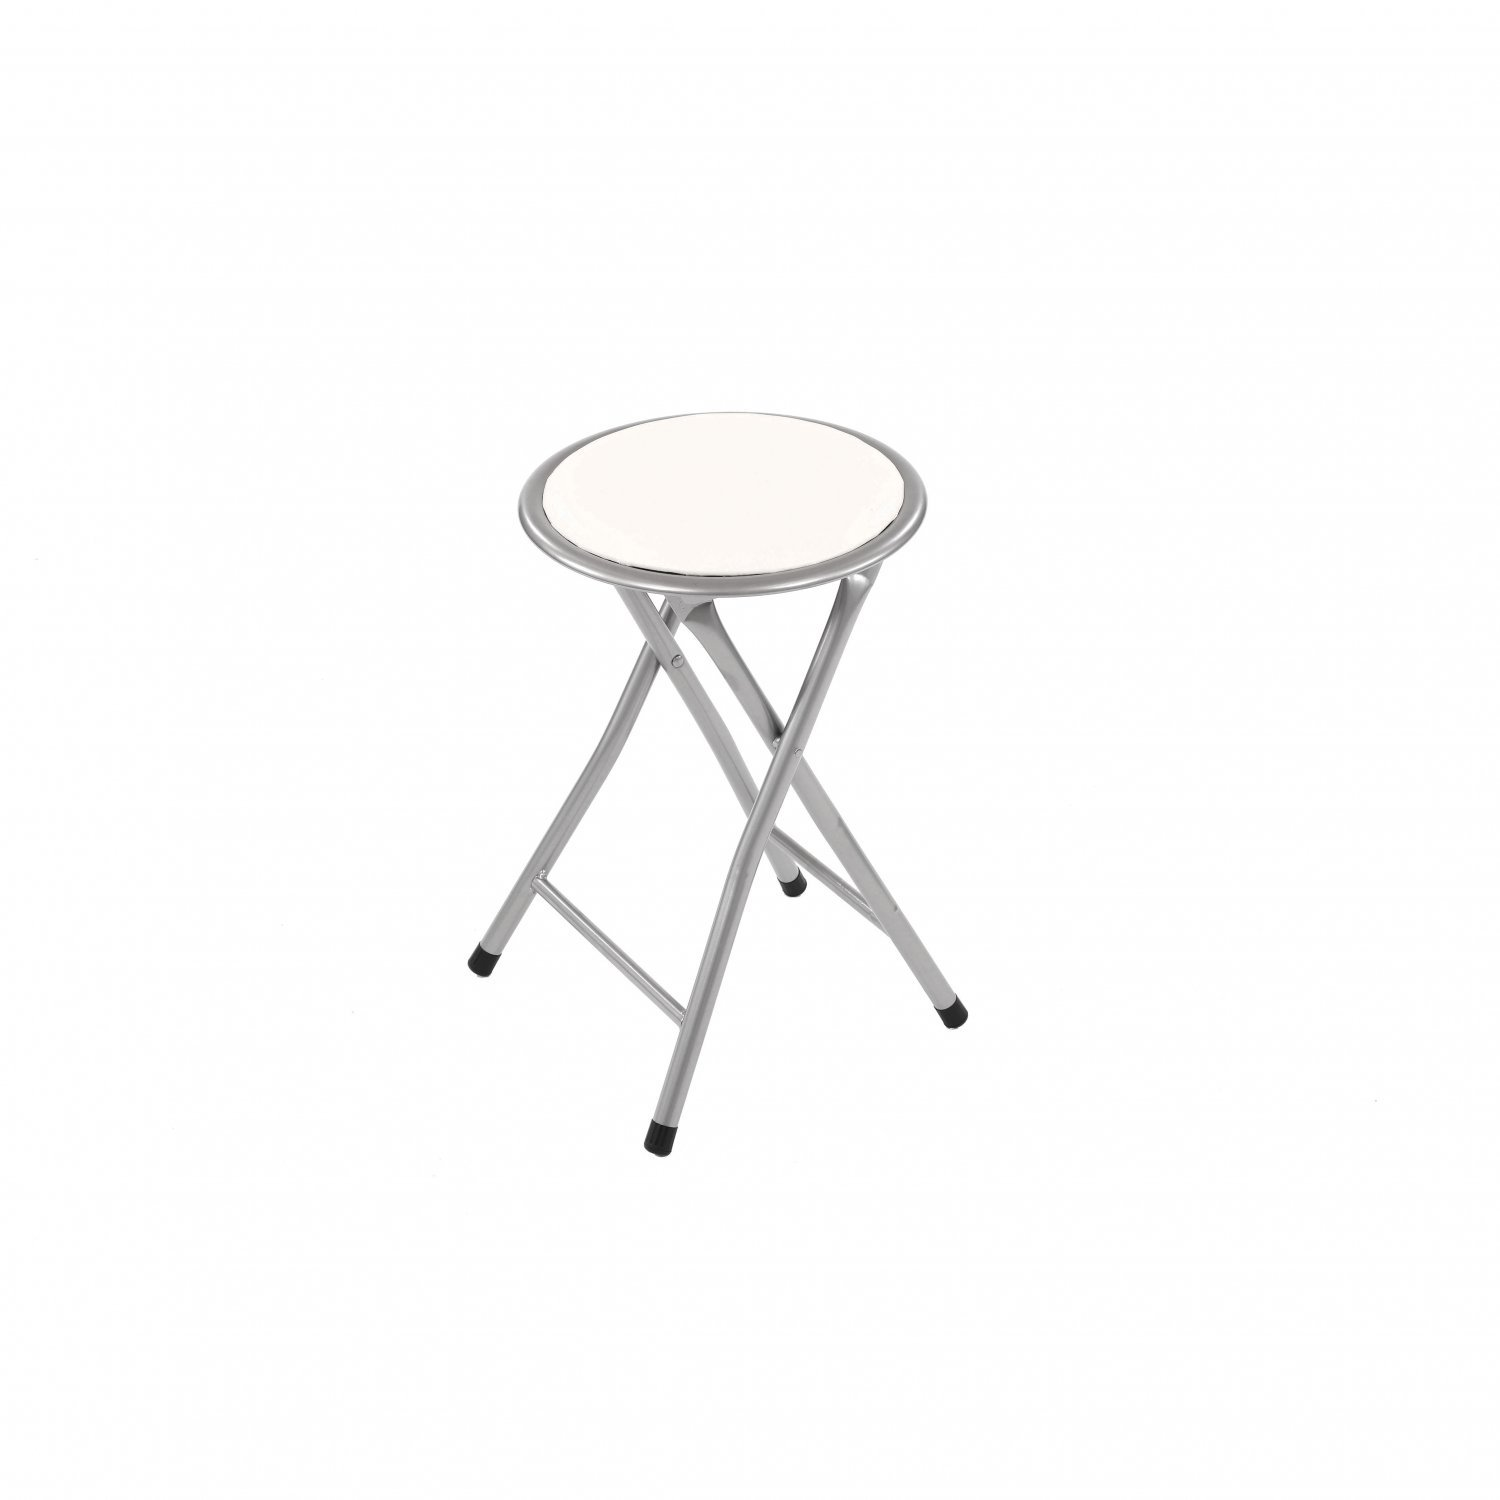 Peachy White Padded Folding Breakfast Kitchen Bar Stool Seat Pabps2019 Chair Design Images Pabps2019Com